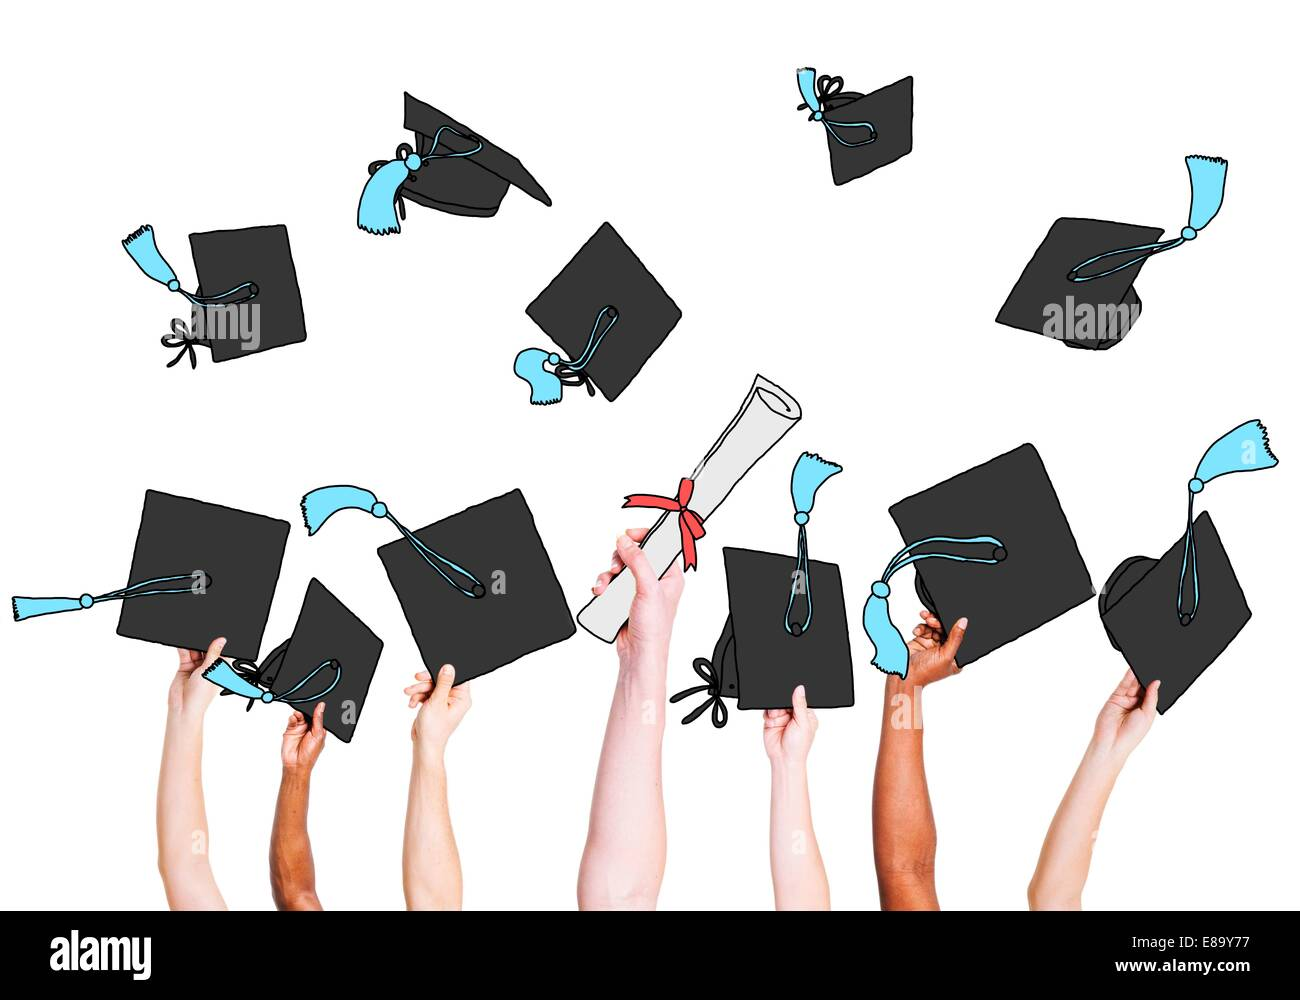 Group of Graduating Student's Hands Holding and Throwing Mortar Board - Stock Image